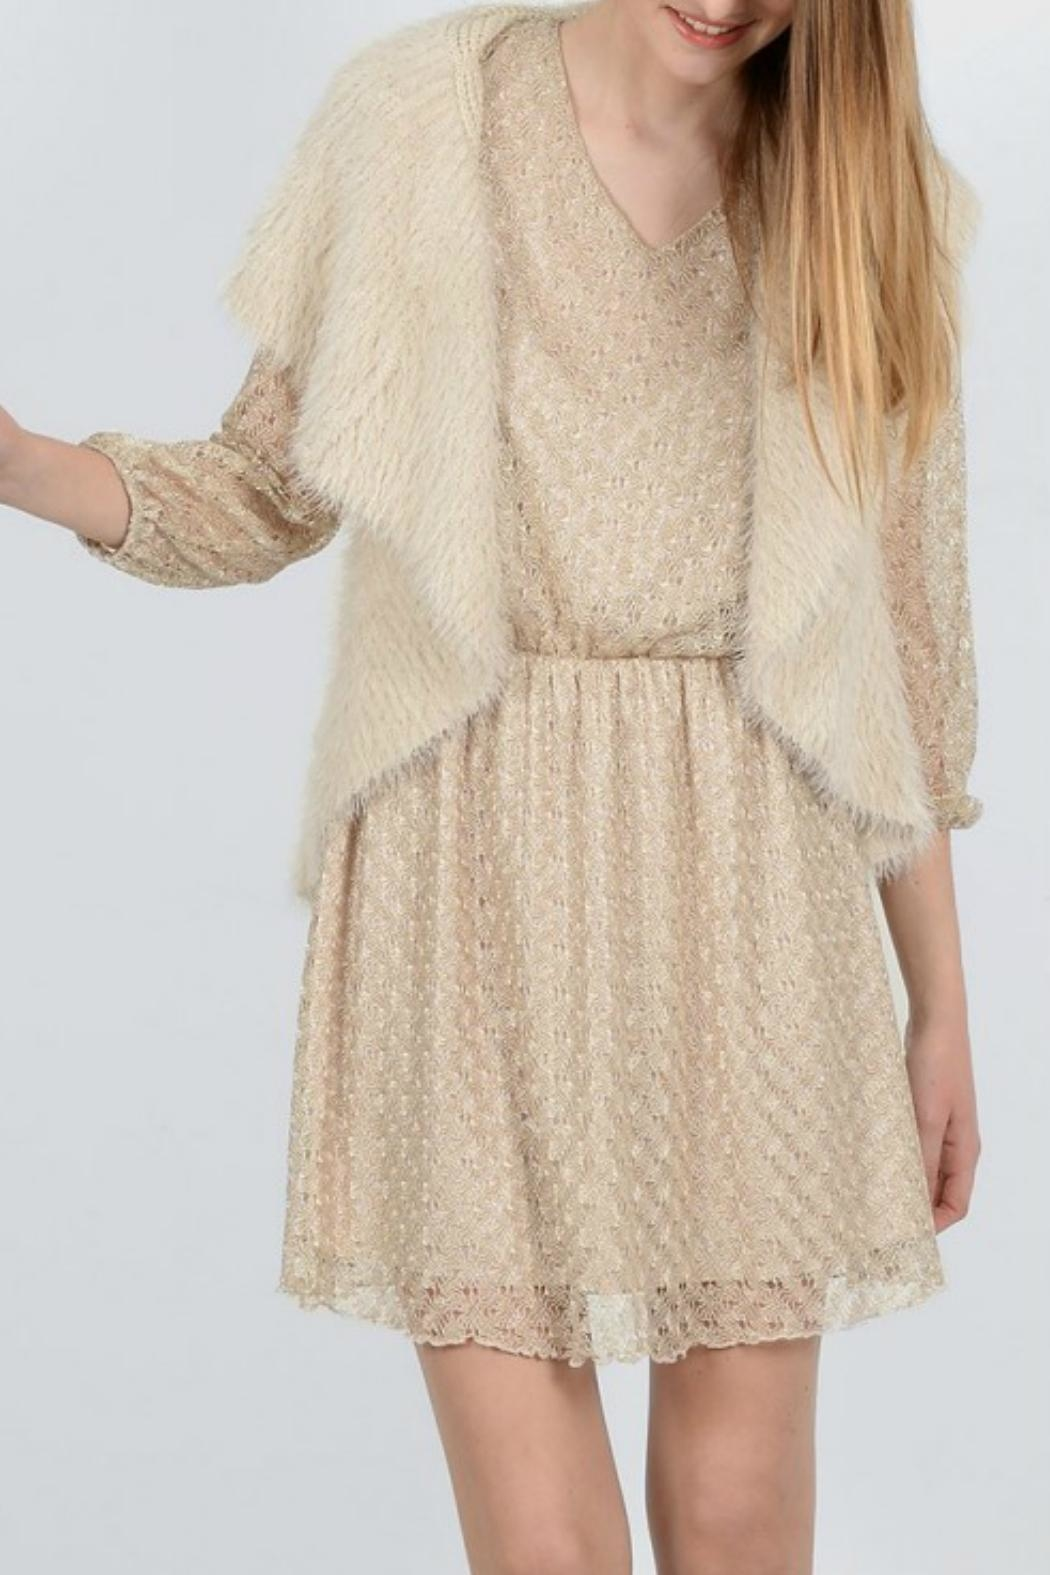 Molly Bracken Knitted Sleeveless Cardigan - Main Image